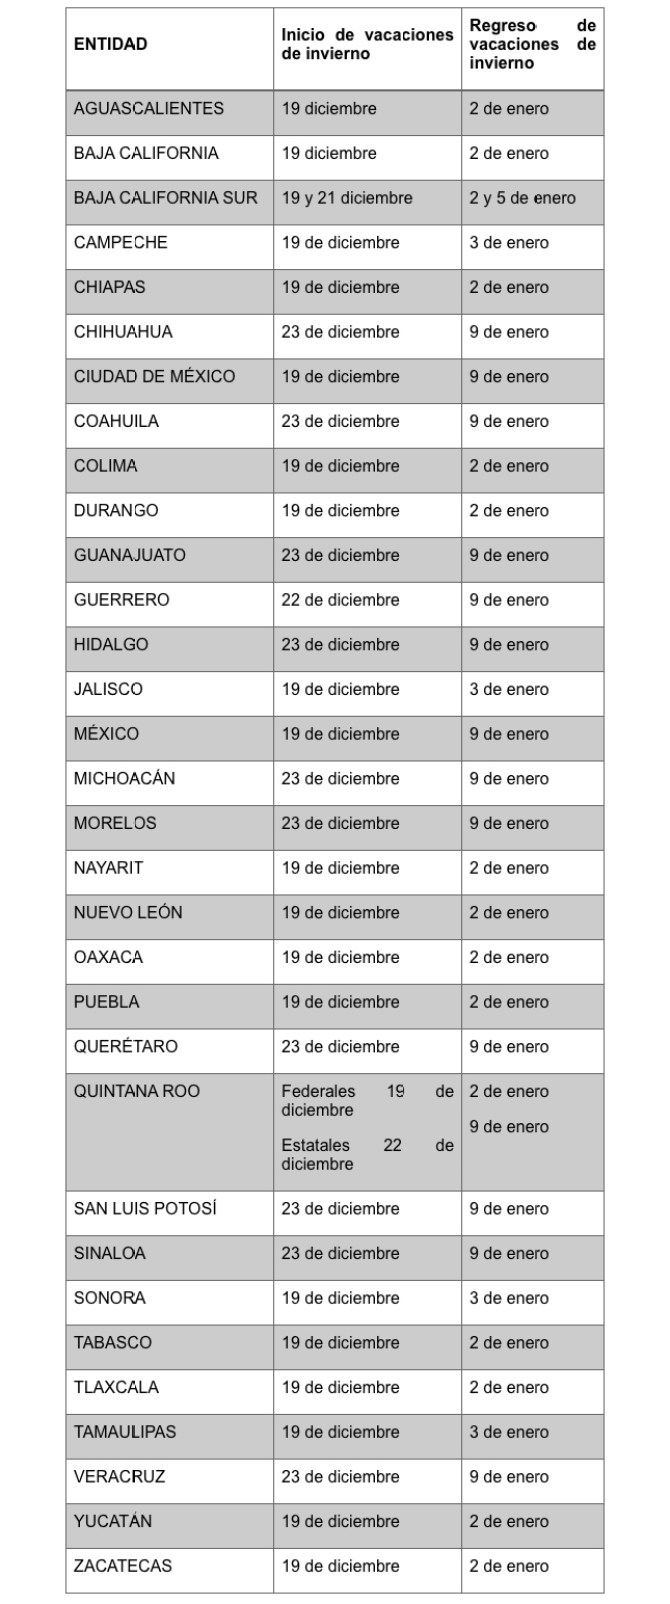 Calendario de vacaciones decembrinas